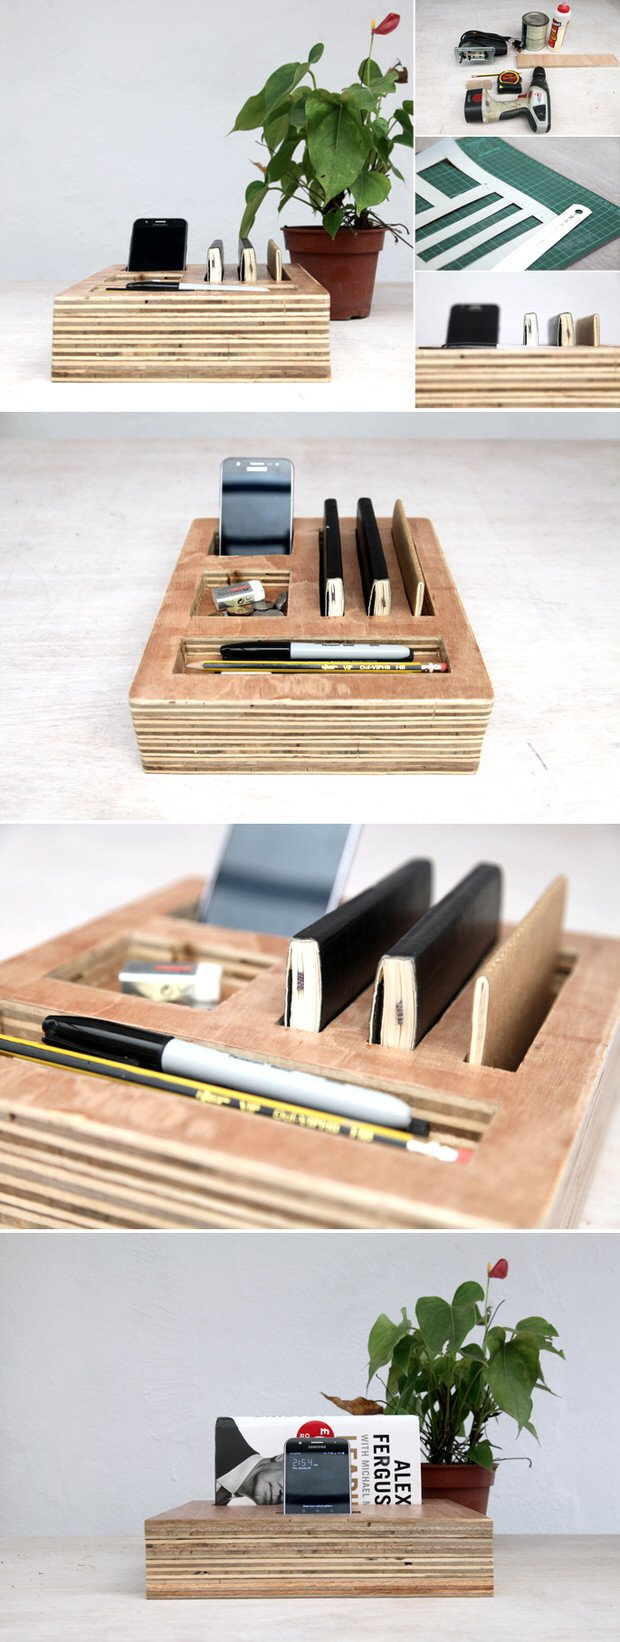 Plywood projects-6